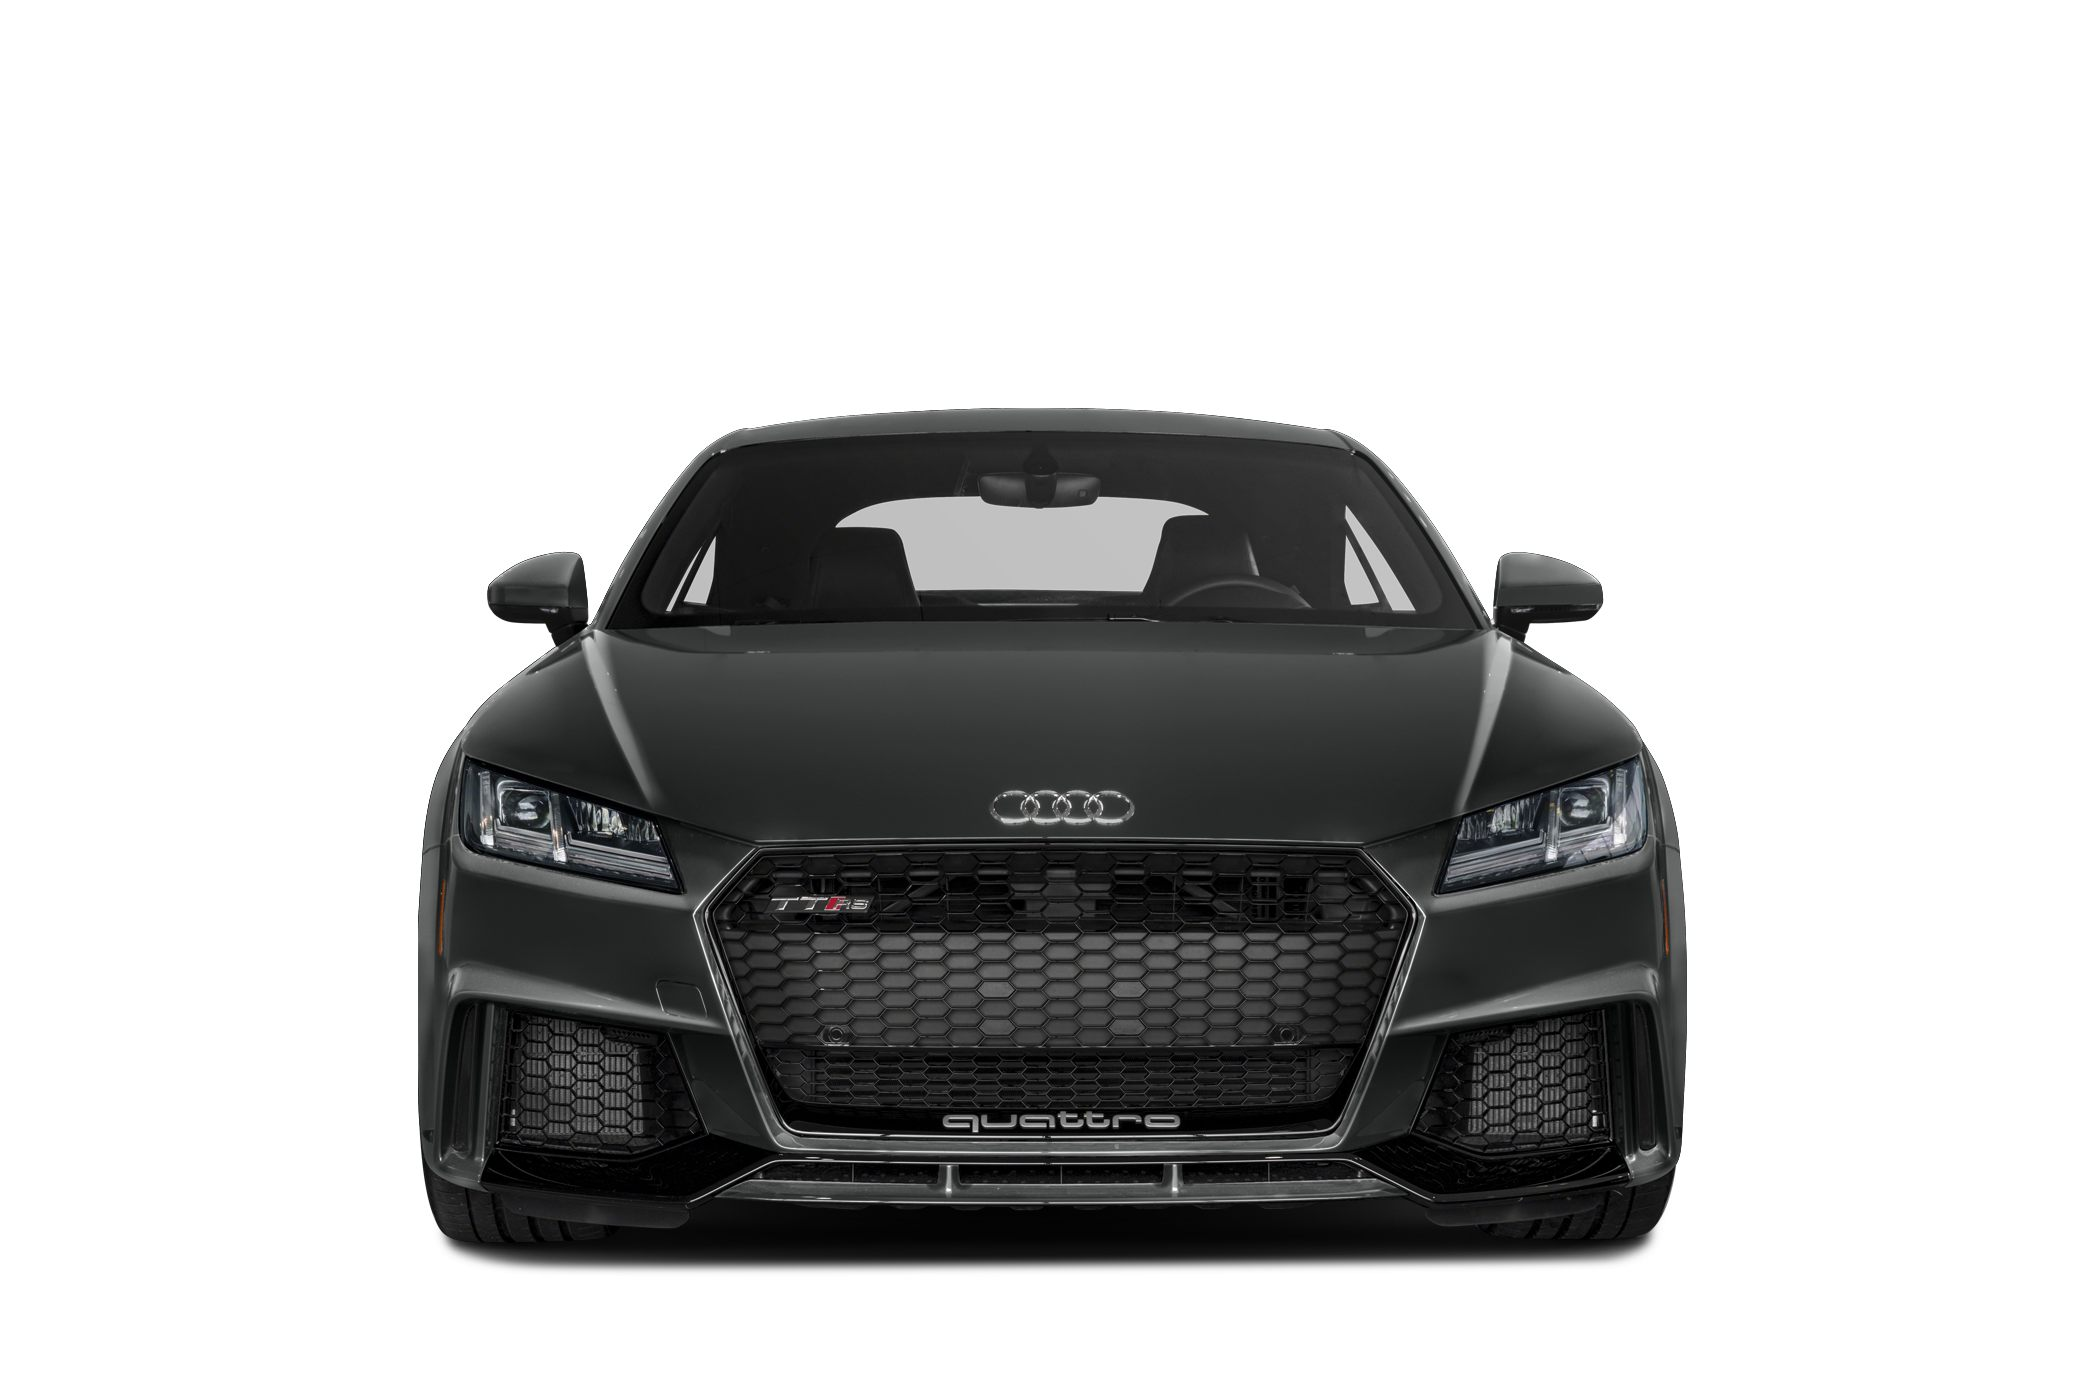 2018 Audi TT RS Deals, Prices, Incentives & Leases ...